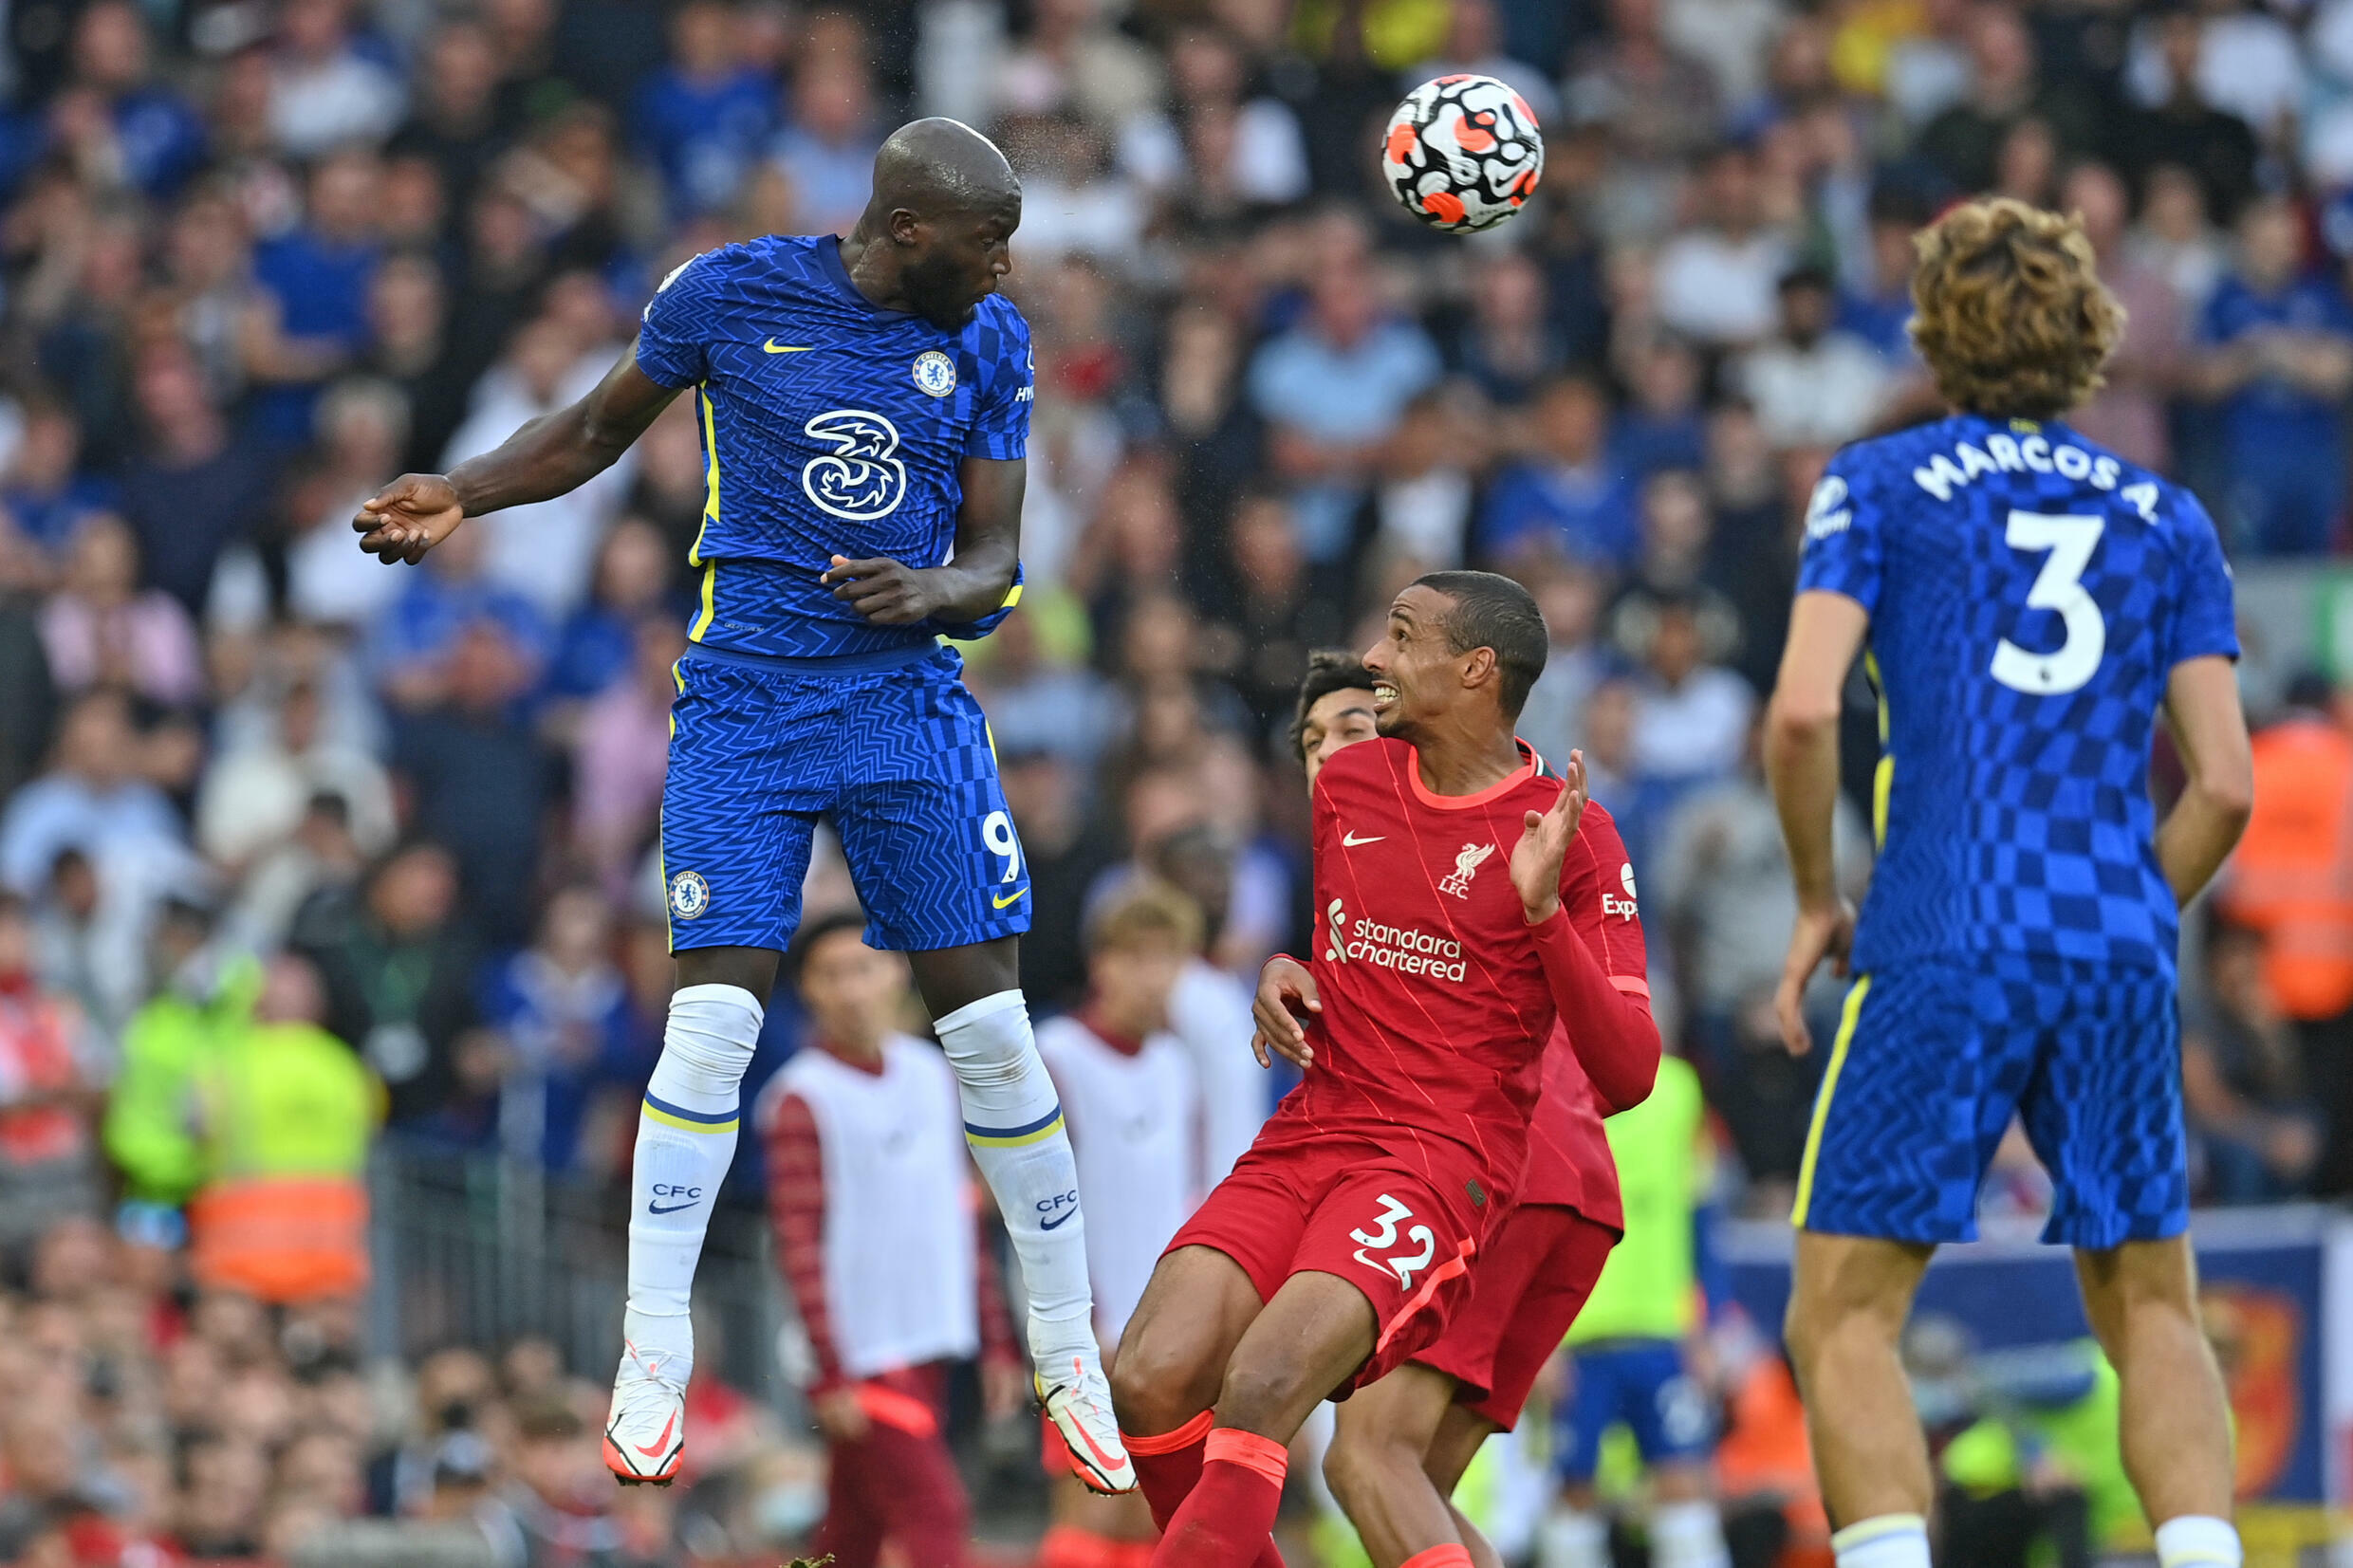 Chelsea held out with 10 men for a full half to draw 1-1 at Liverpool